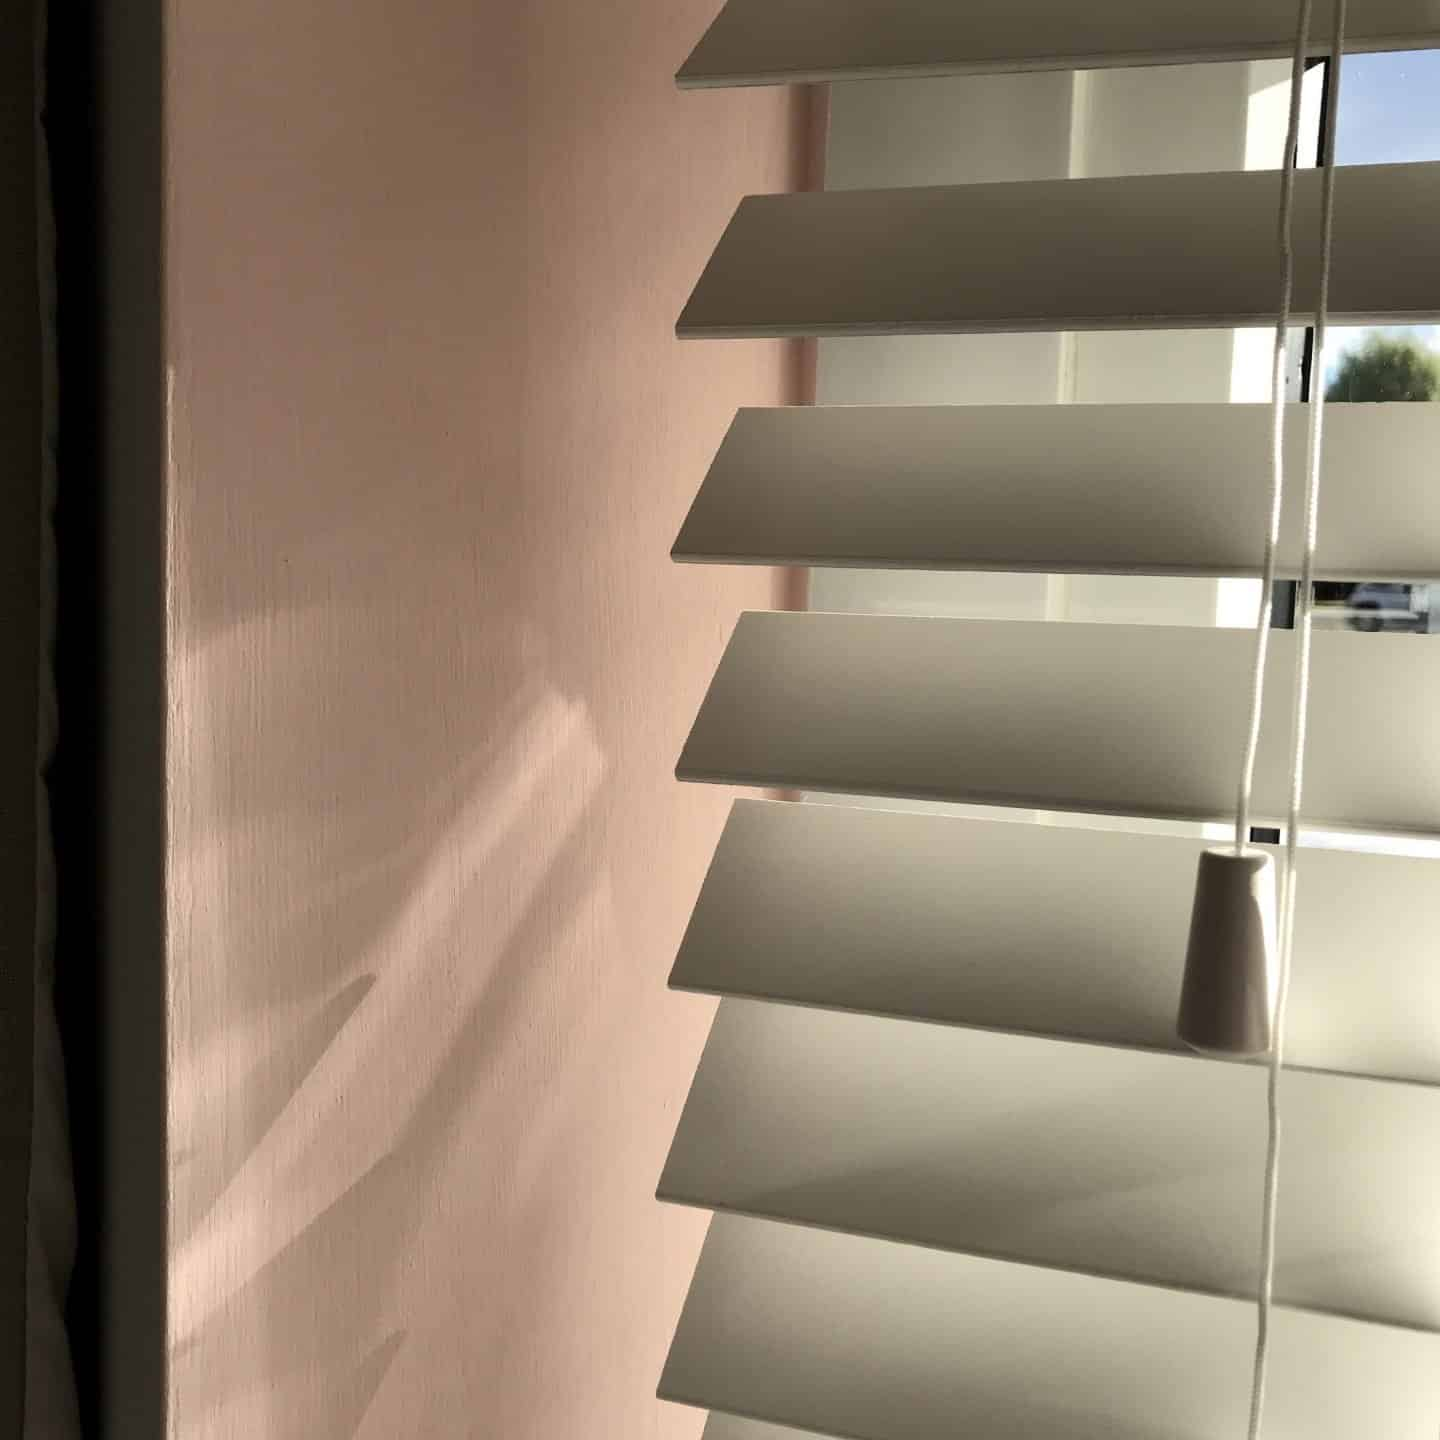 50mm white wooden blinds close up